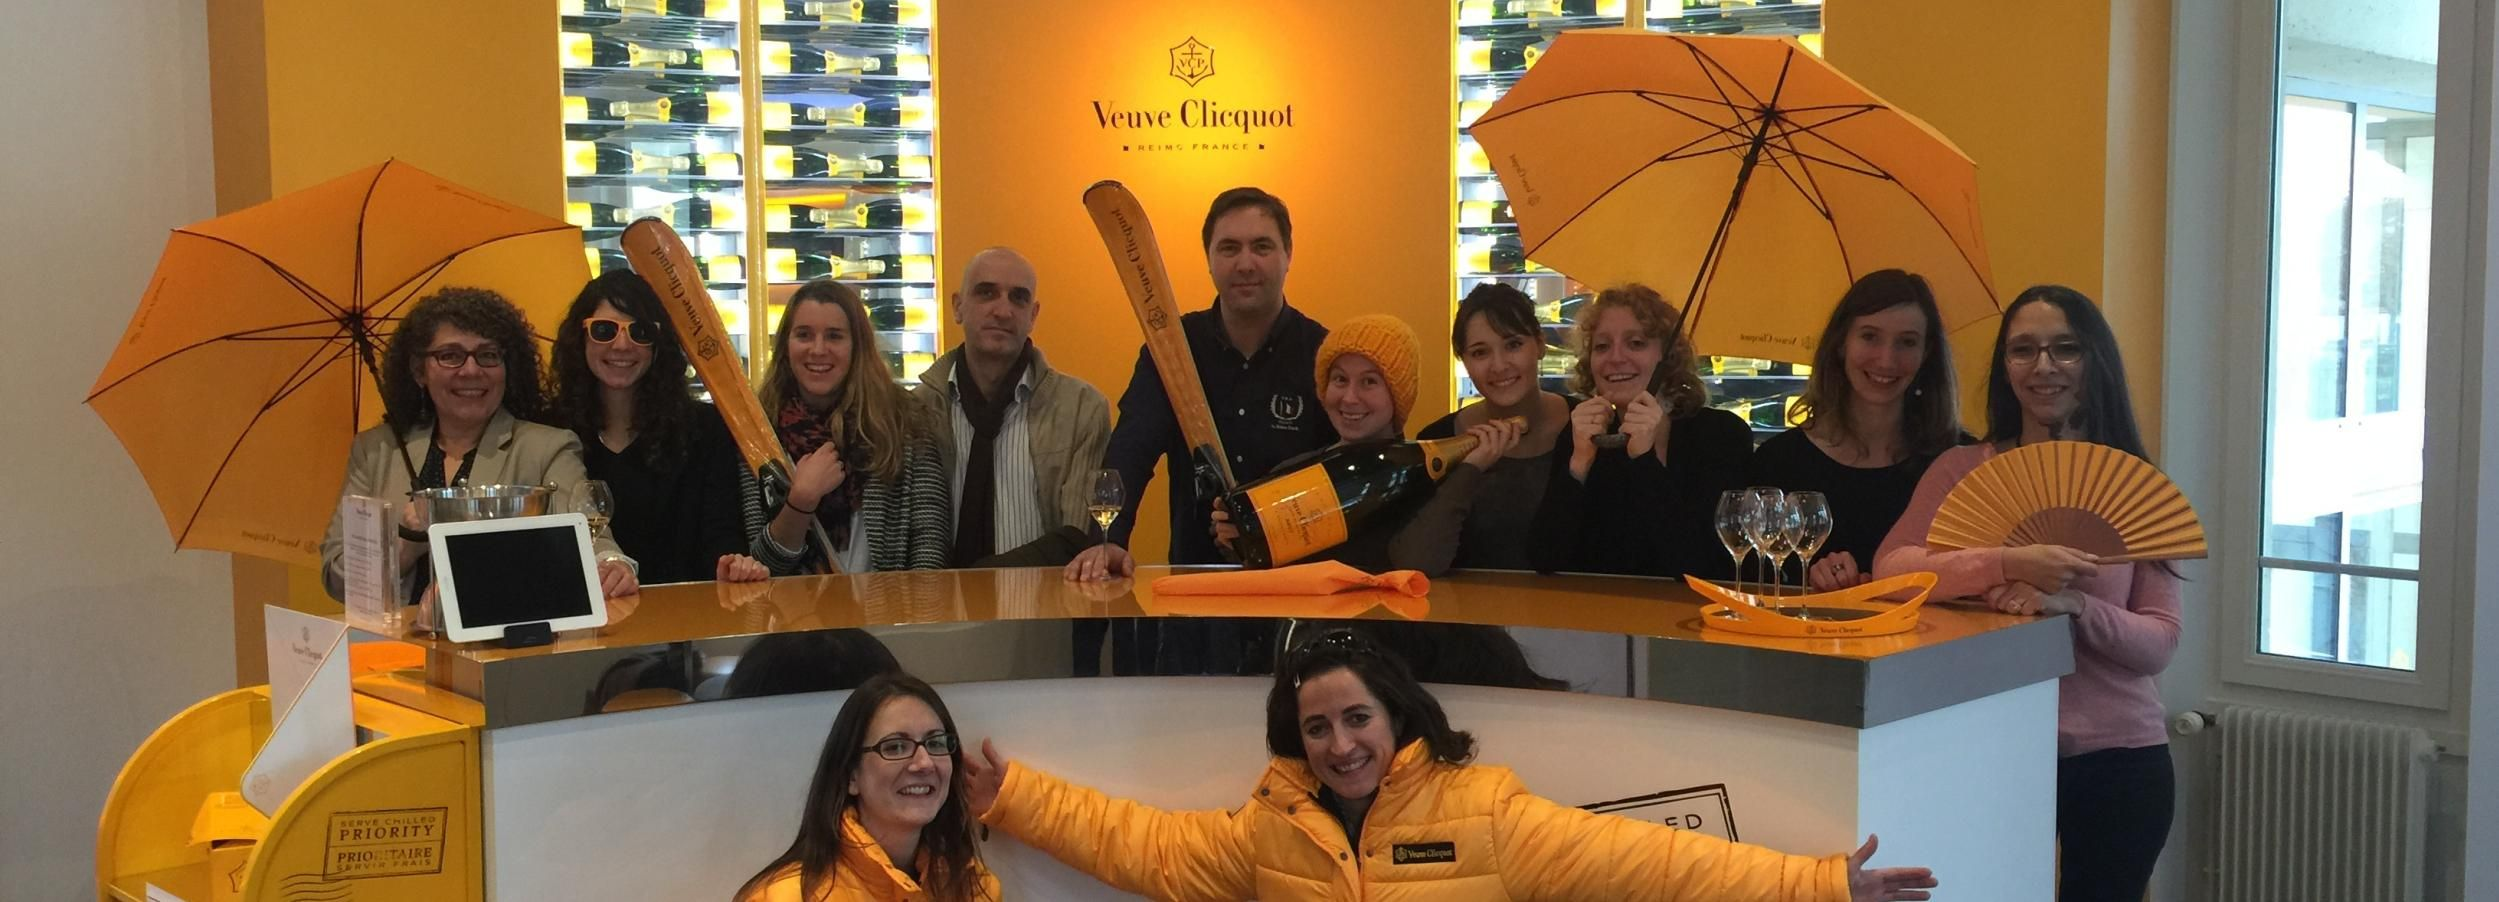 From Reims: Veuve Clicquot and Grand Cru Tasting with Lunch